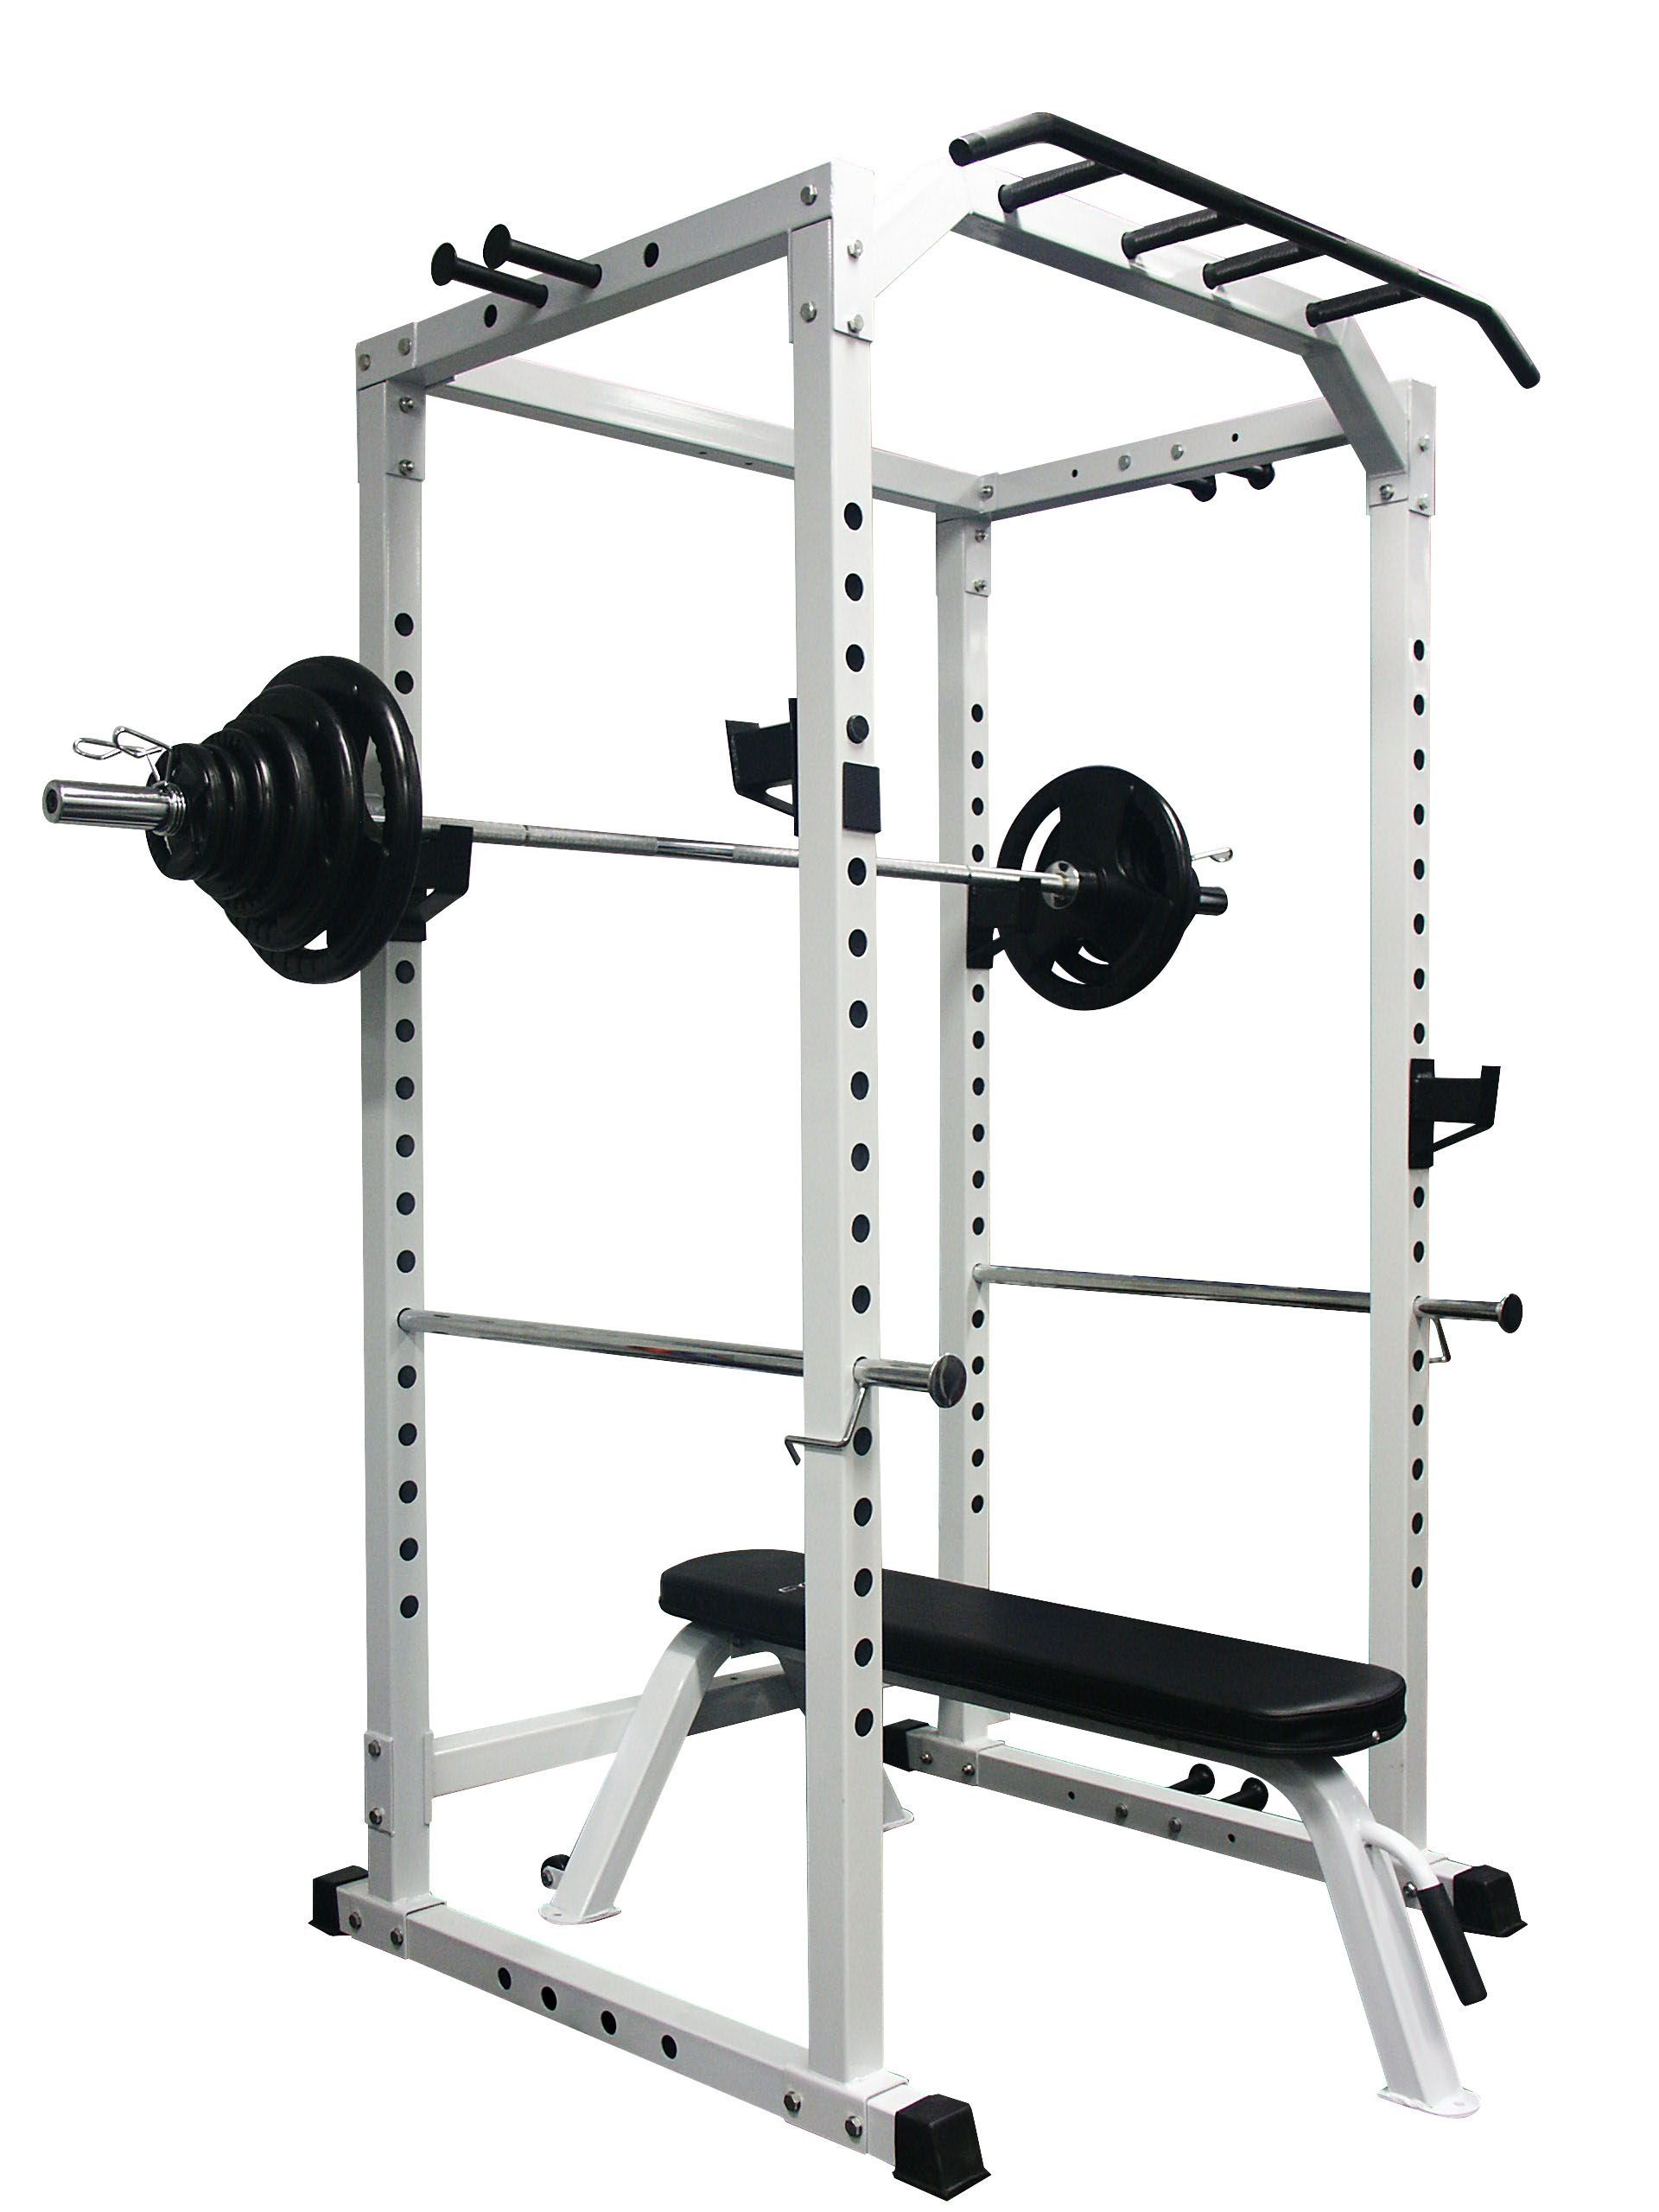 Lc2 Power Rack 100kg Olympic Weight Set Flat Bench Homegym100kg Weight Bench Set Bench Press Rack Olympic Weight Set